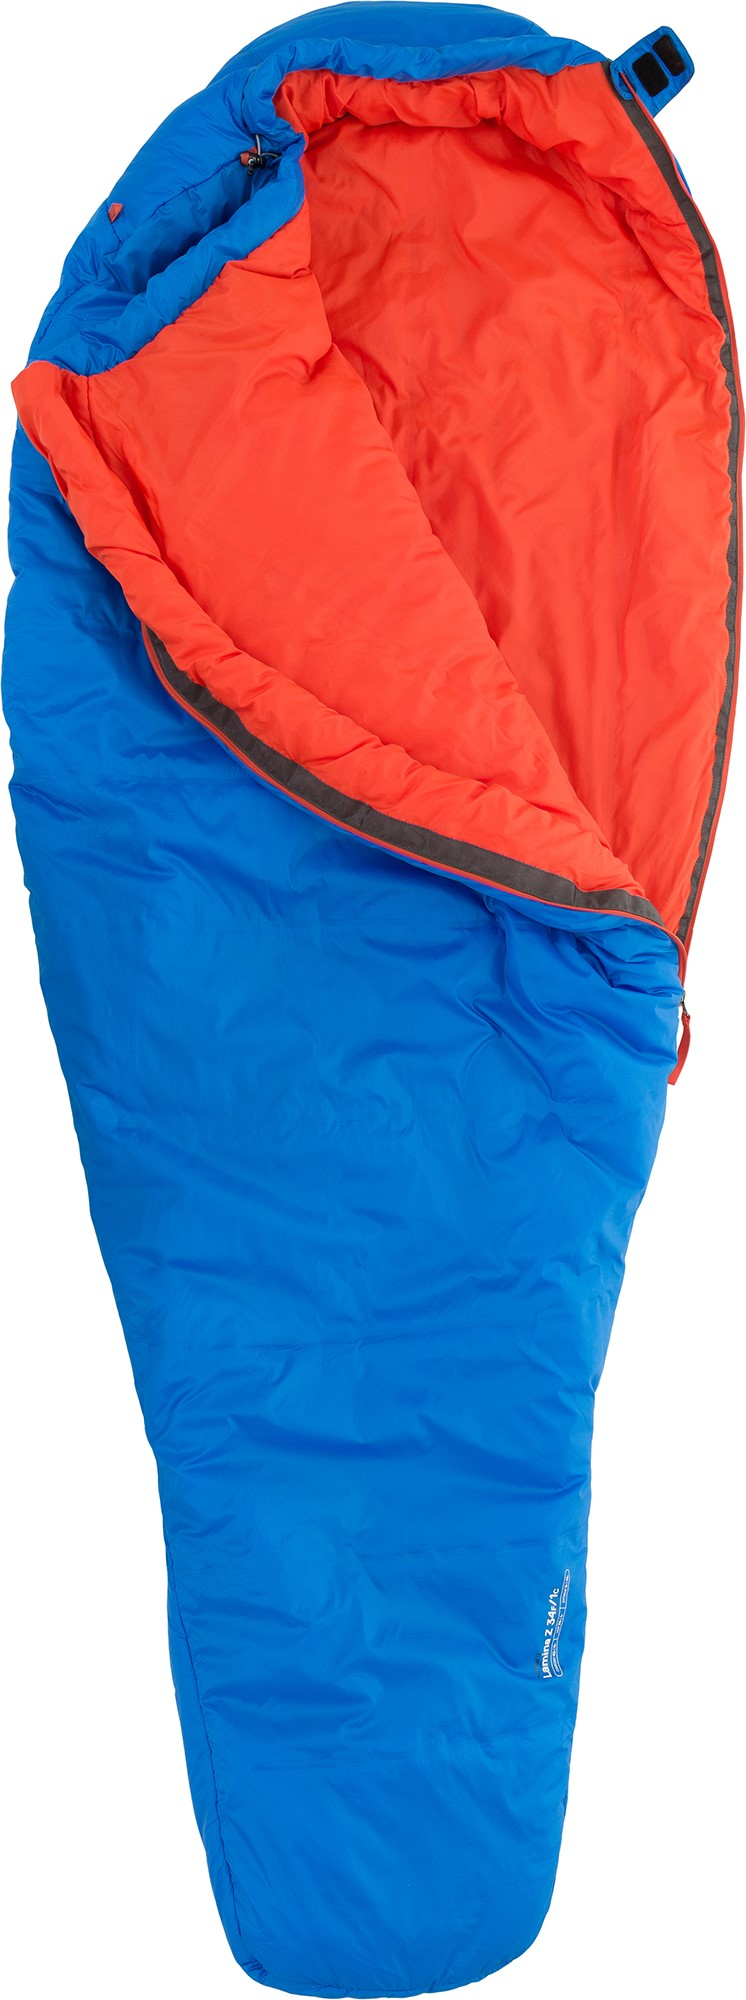 Mountain Hardwear Mountain Hardwear Lamina™ Z 34F/1C Long, размер 198L